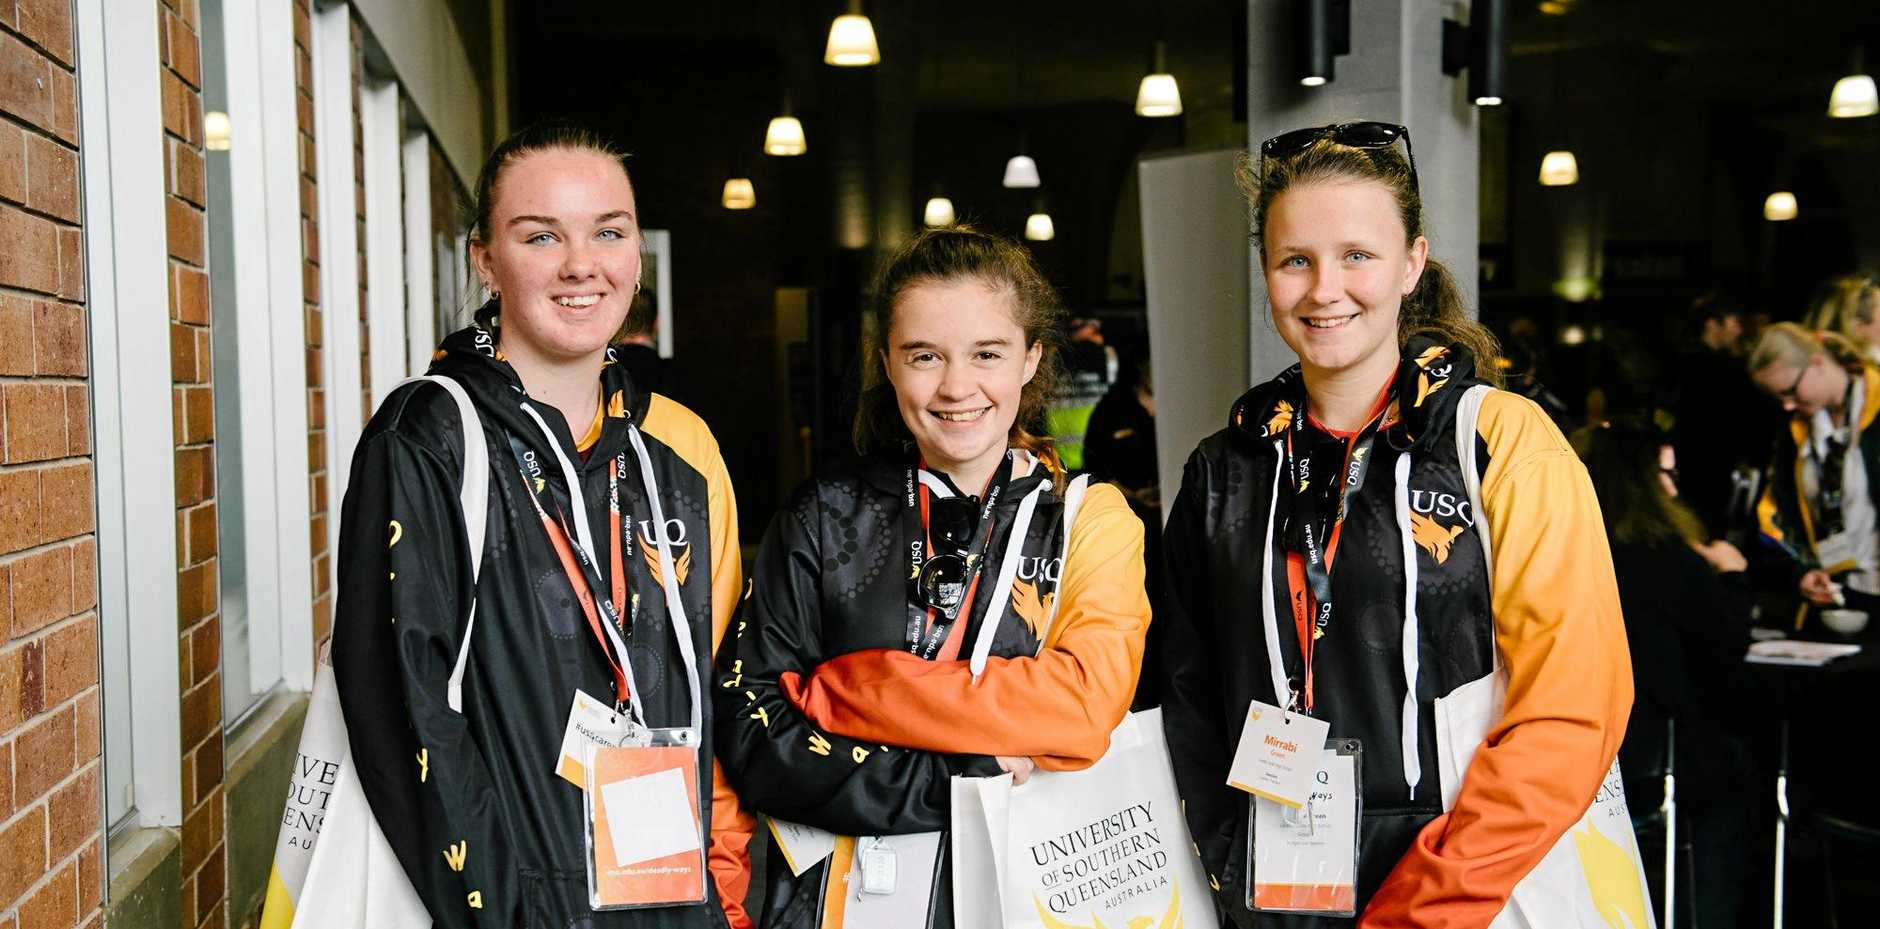 JOBS, JOBS, JOBS: Taking in the different options at the USQ 2019 Careers Day are Laidley state high school students (from left) Nicole Abel, Kalinda Davis and Mirrabi Green.